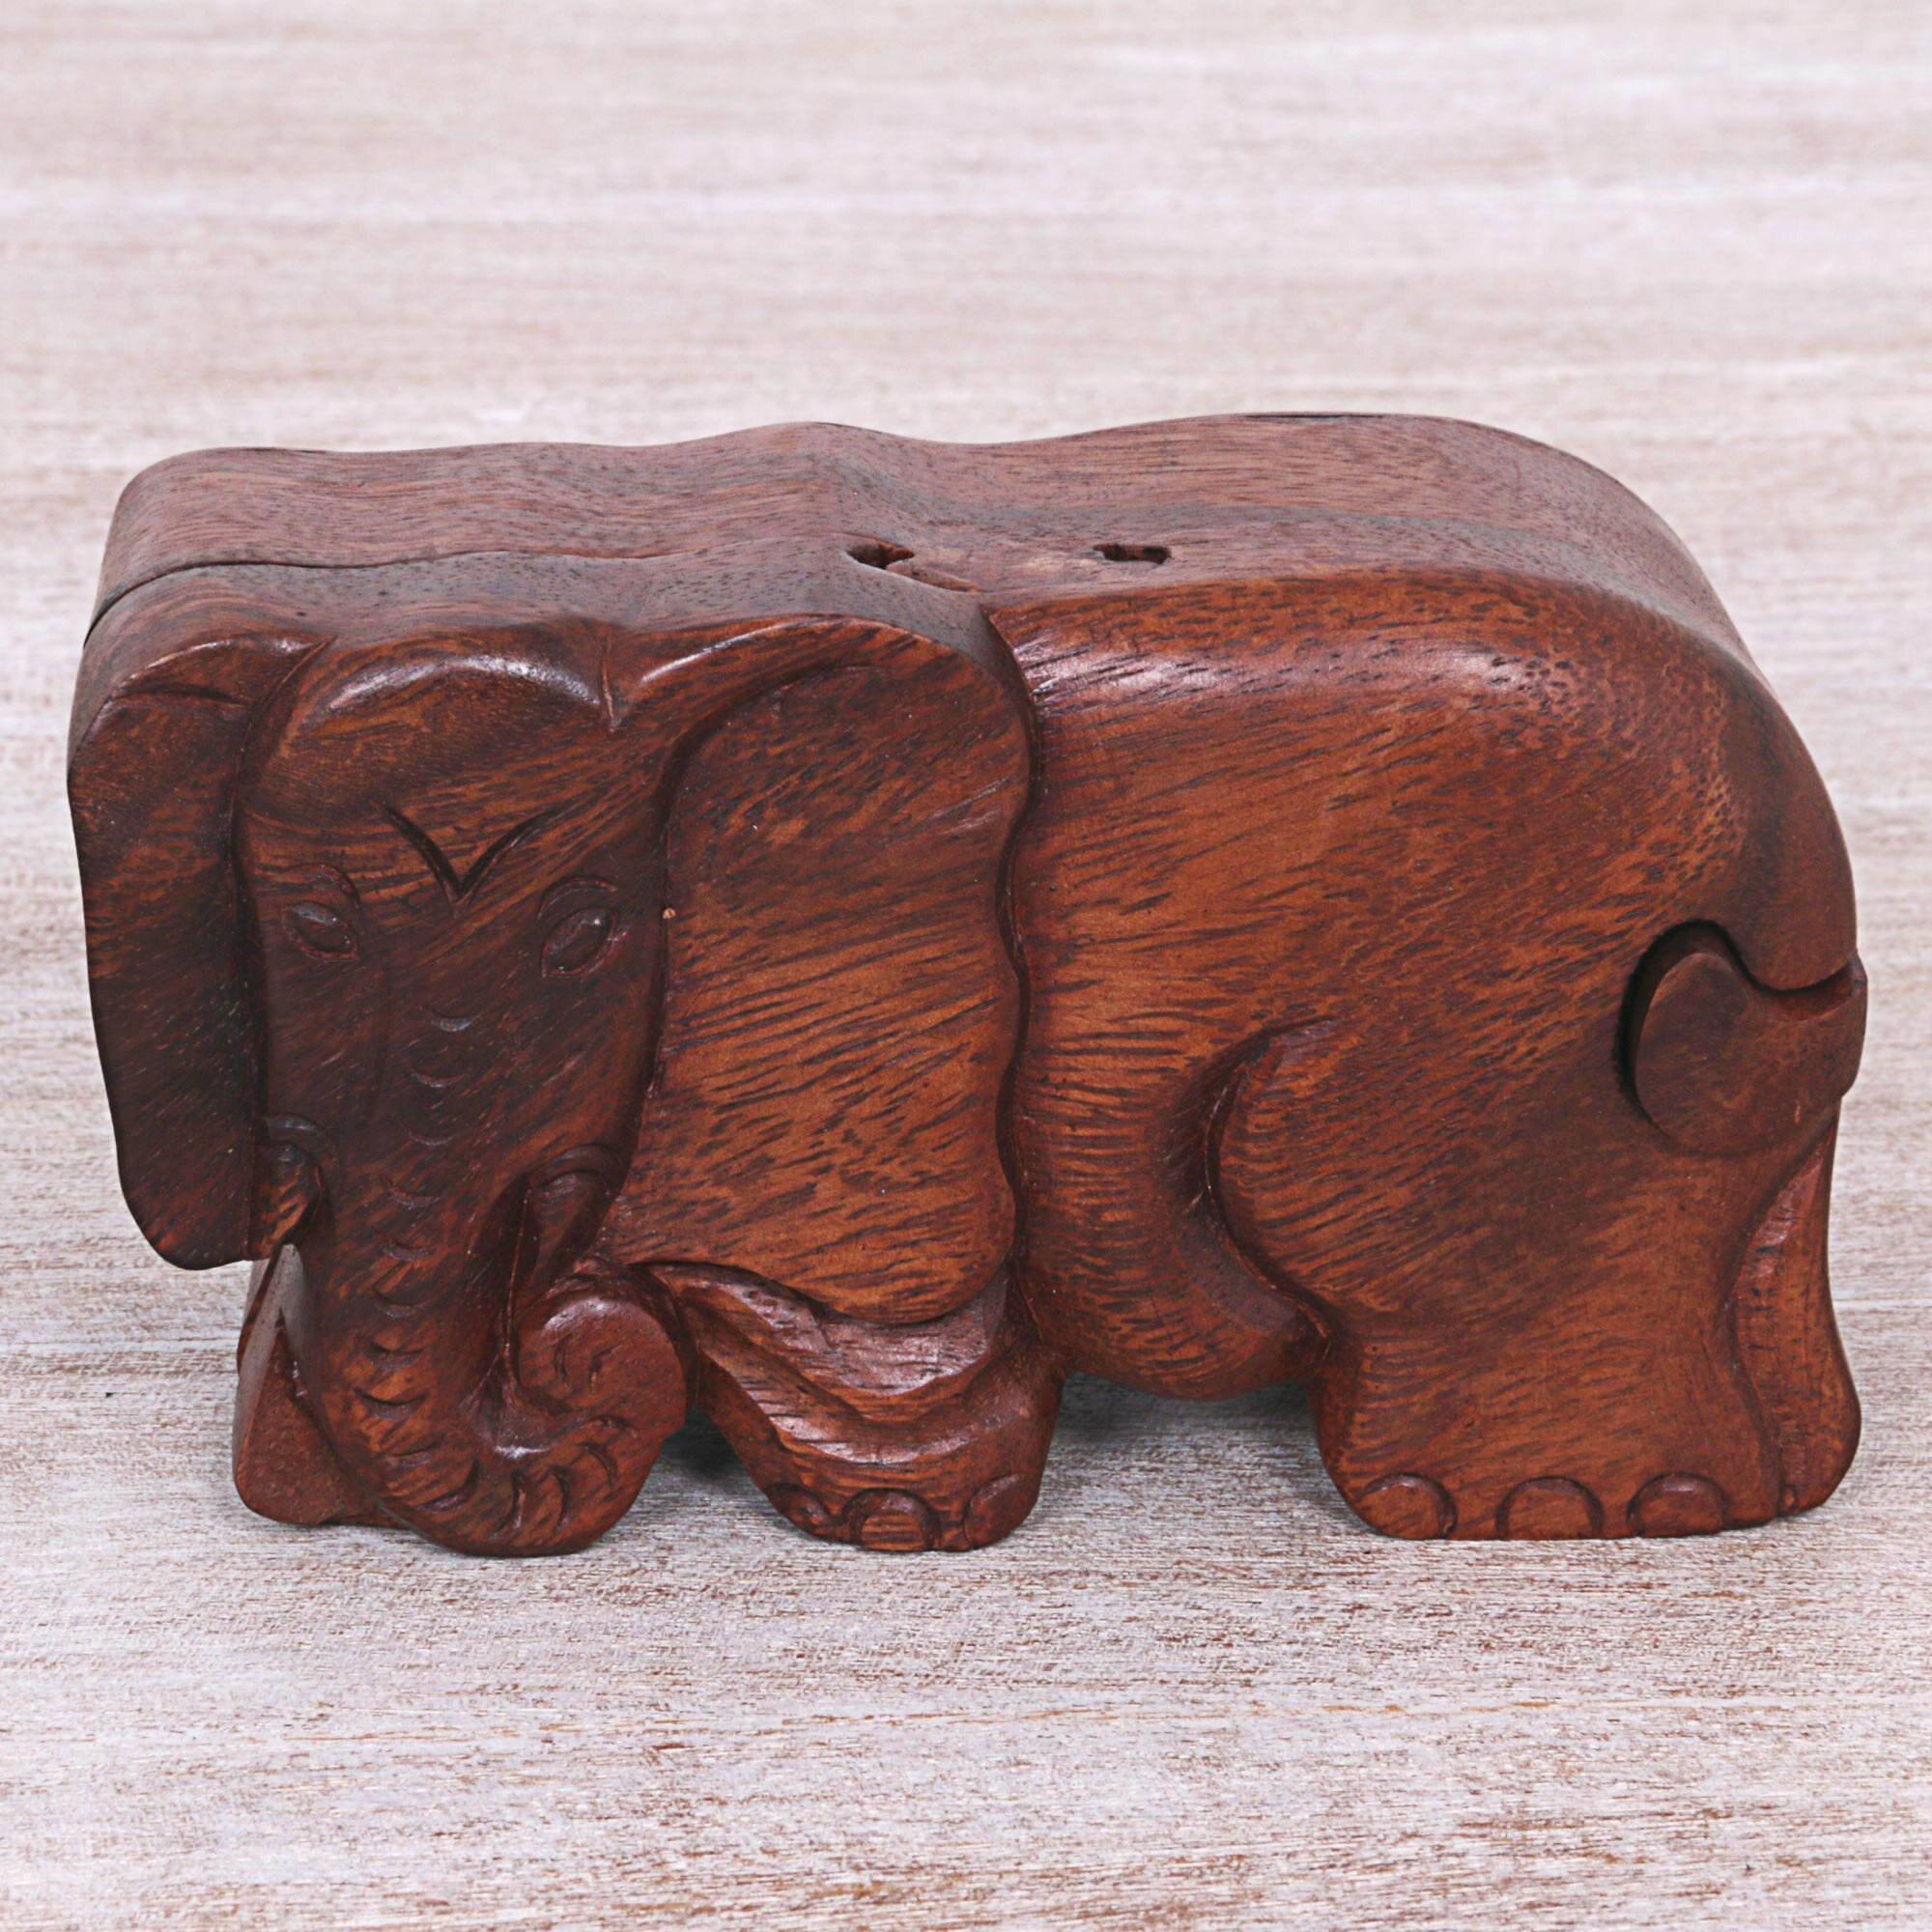 1 Decorative Games Puzzles Decorative Objects You Ll Love In 2021 Wayfair